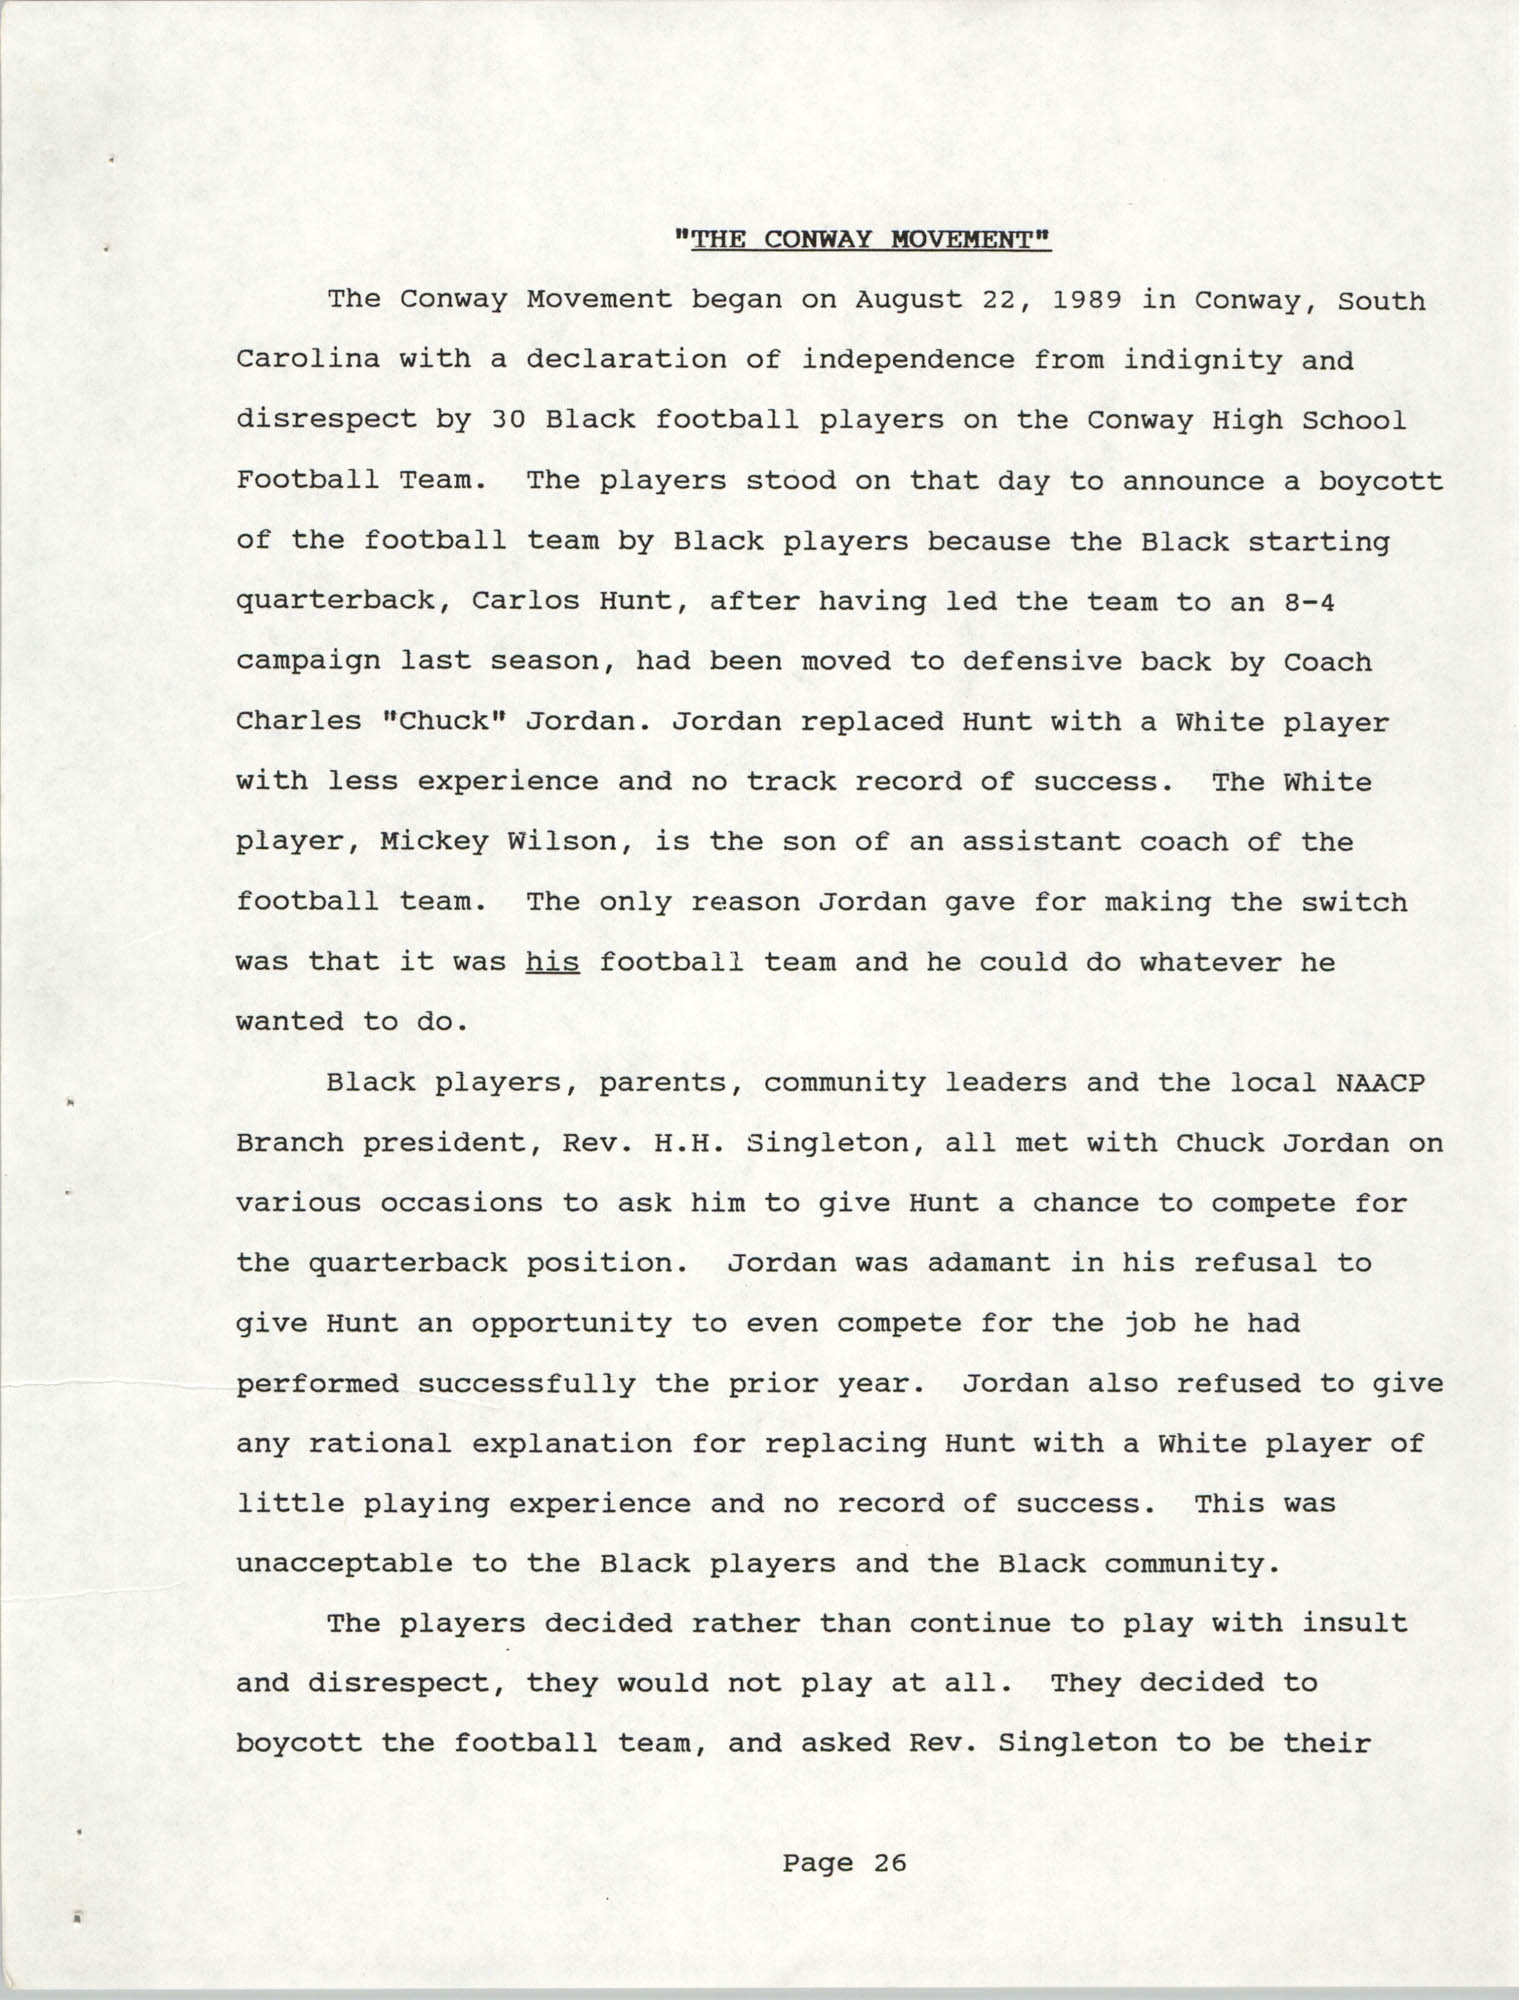 South Carolina Conference of Branches of the NAACP, 1990 Annual Report, Part Two, Page 26